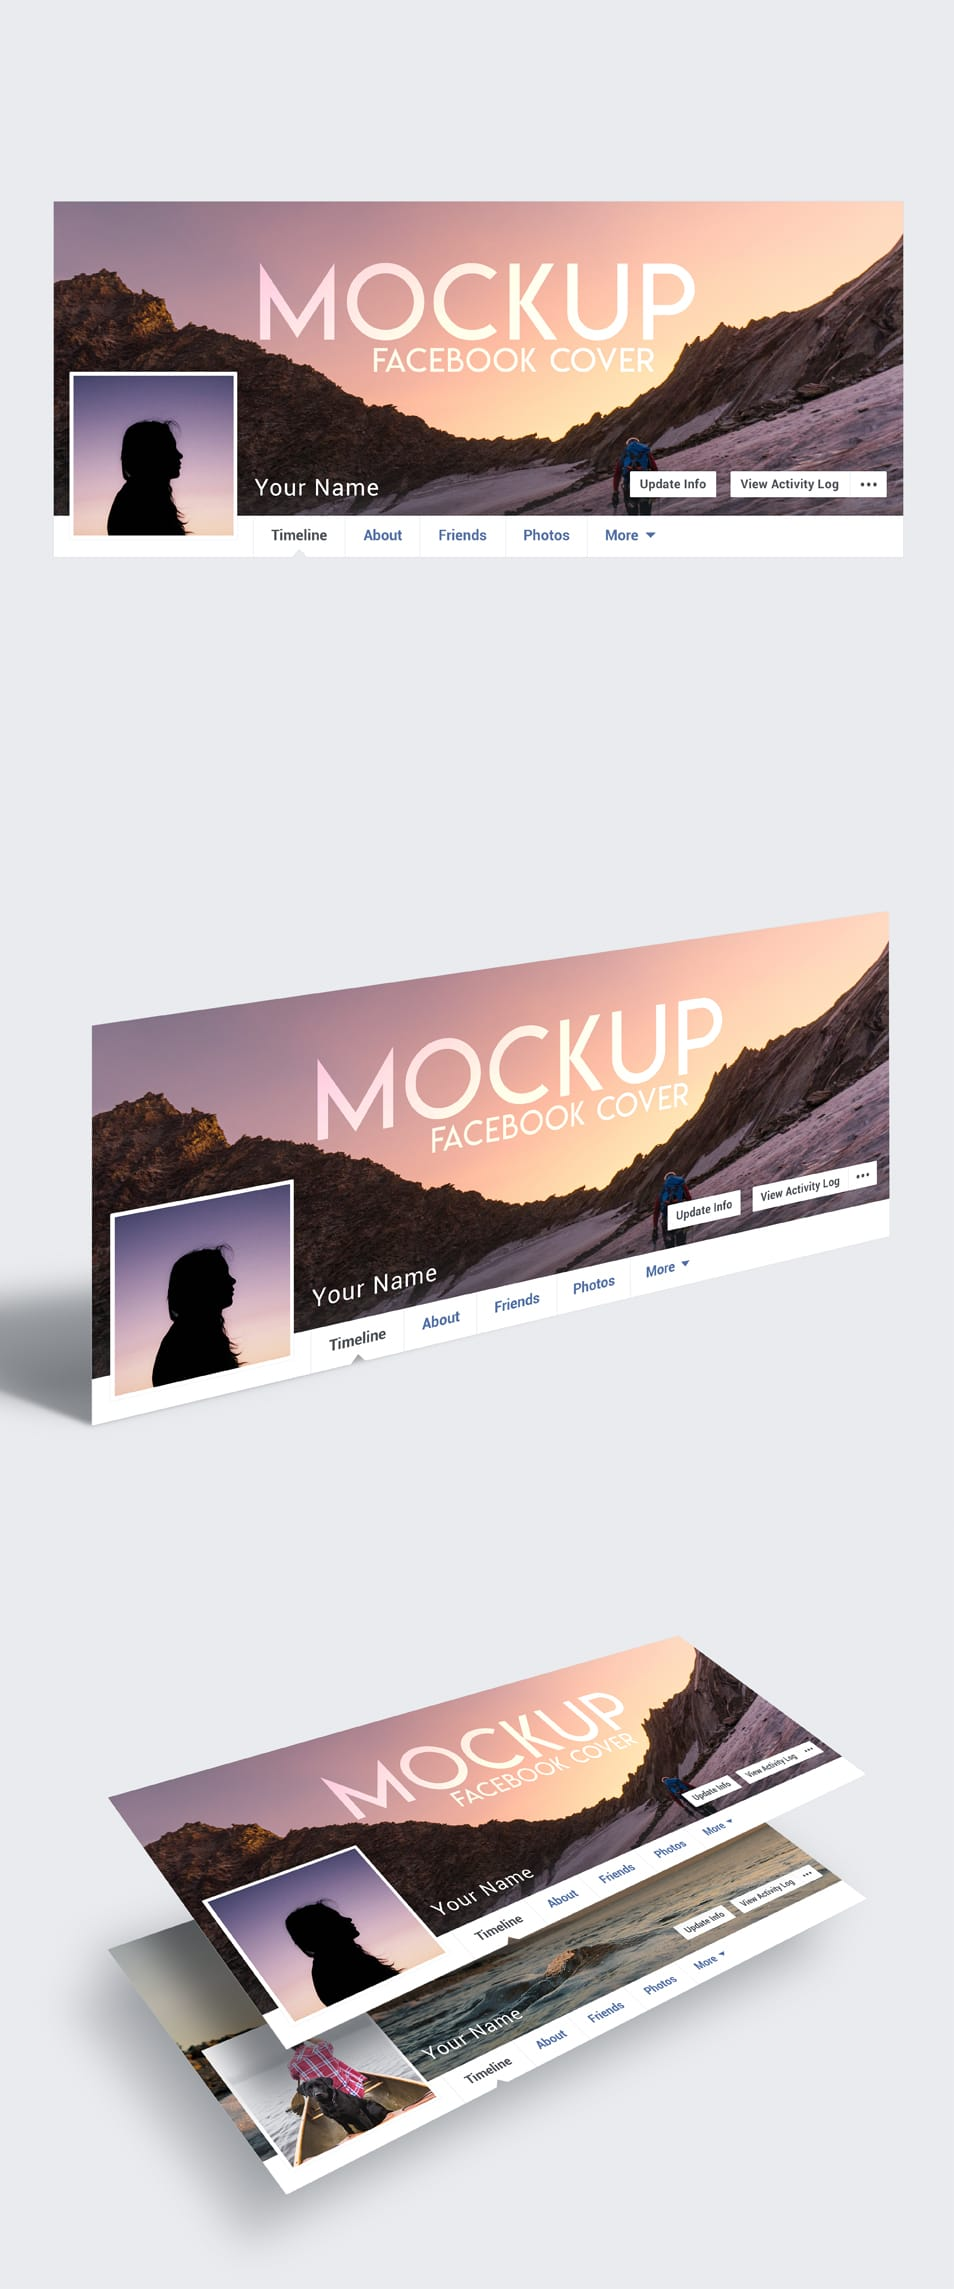 3 Free Facebook Cover Mock-ups in PSD FREE download